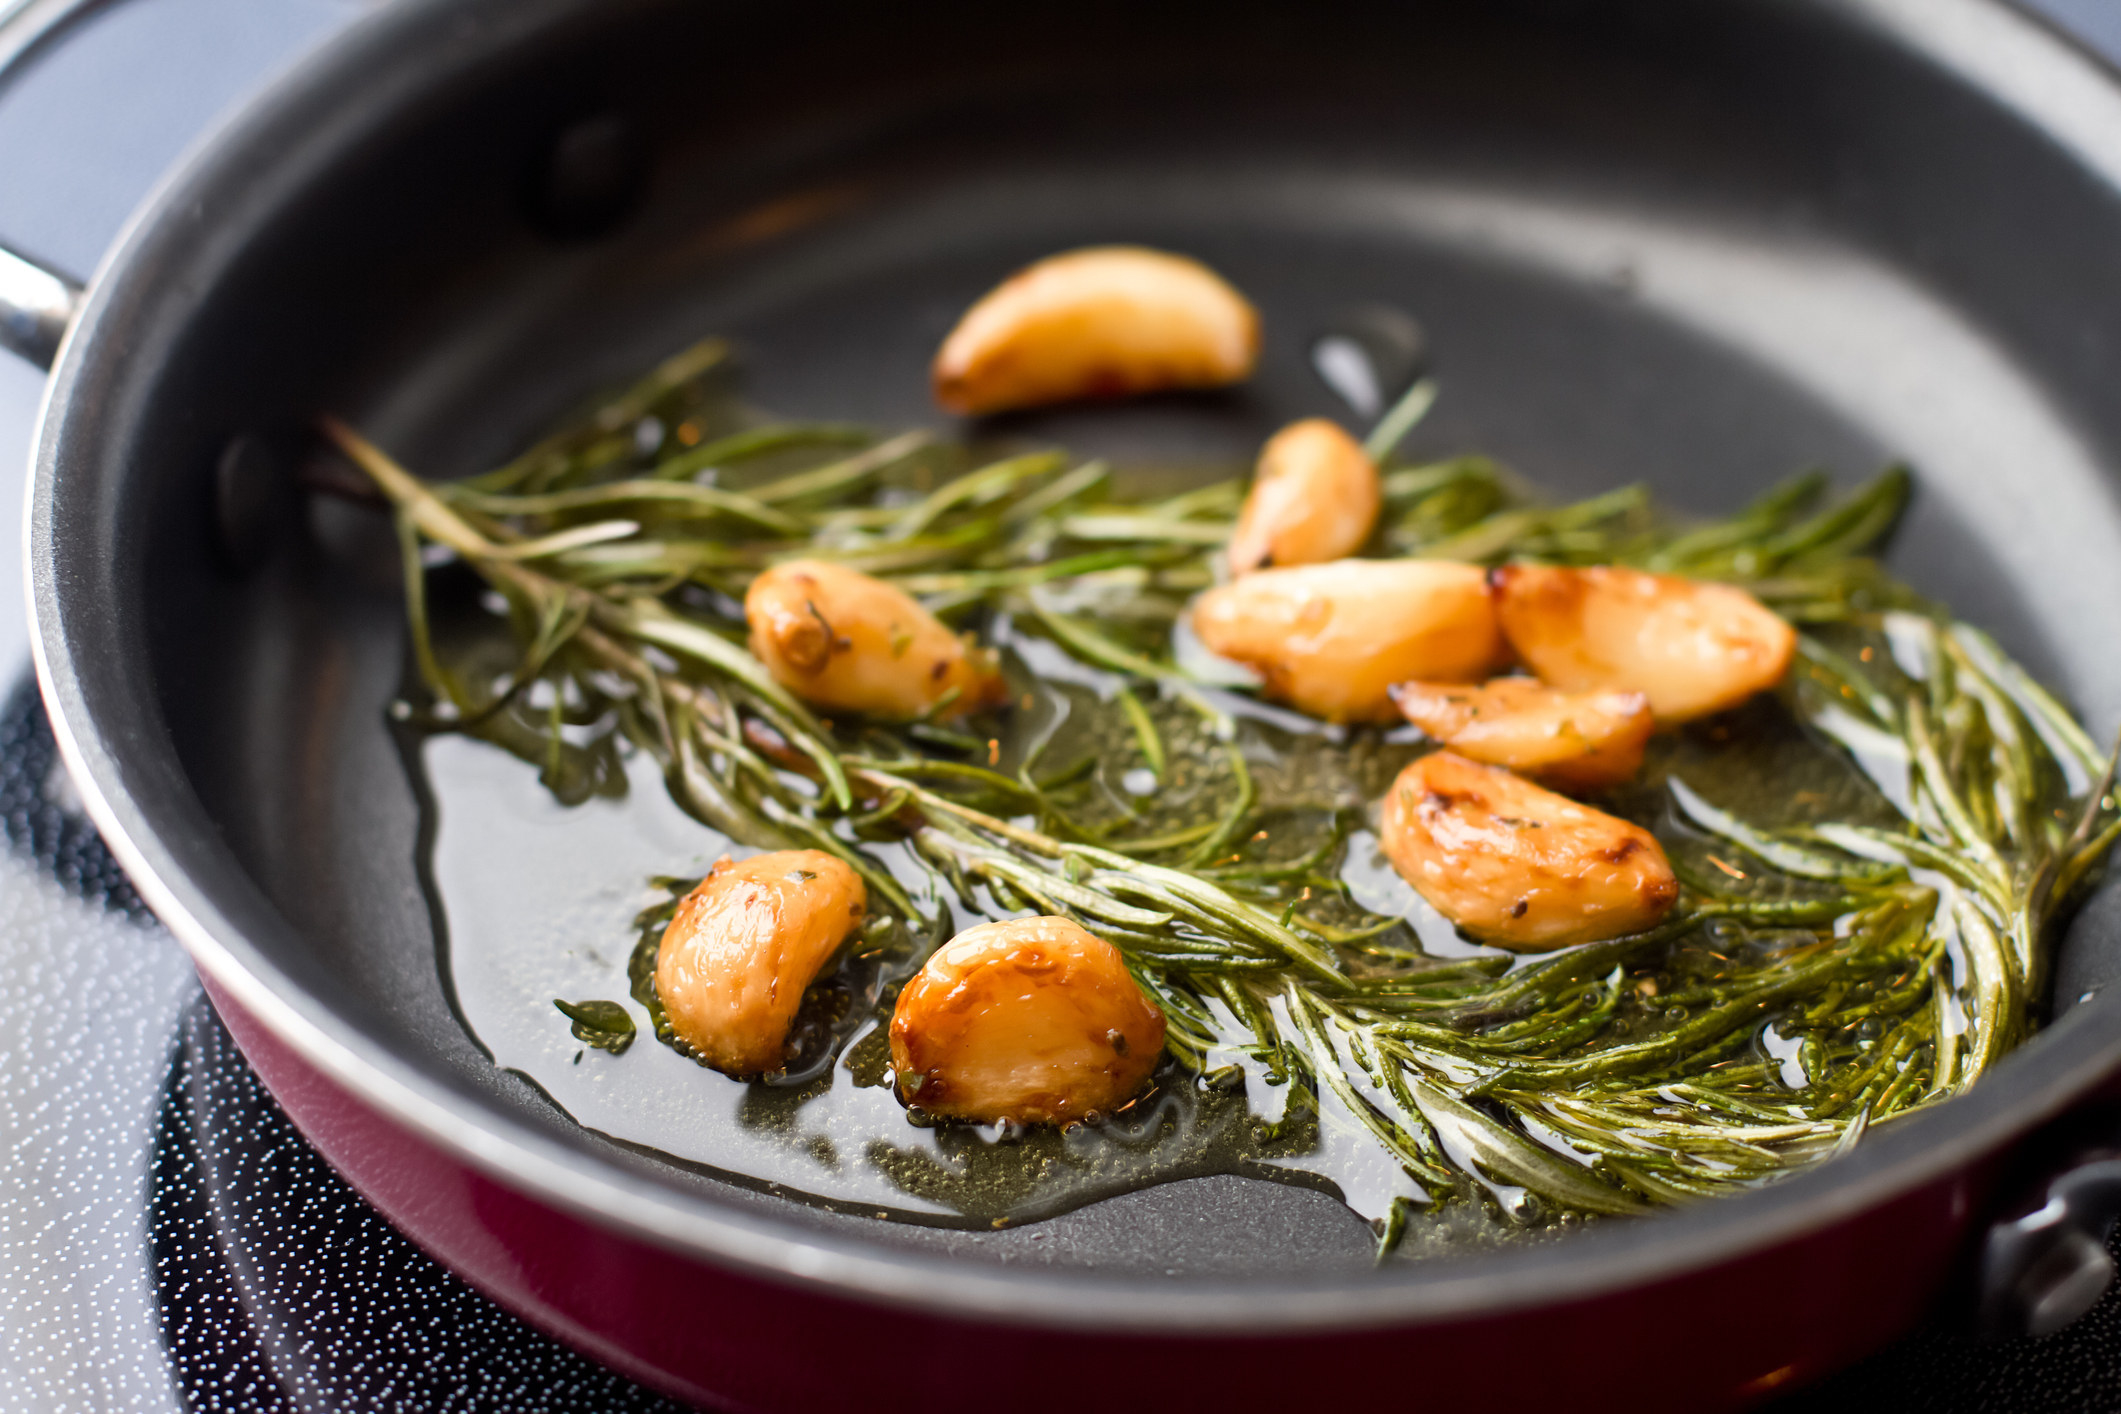 Garlic cloves and rosemary cooking in olive oil.